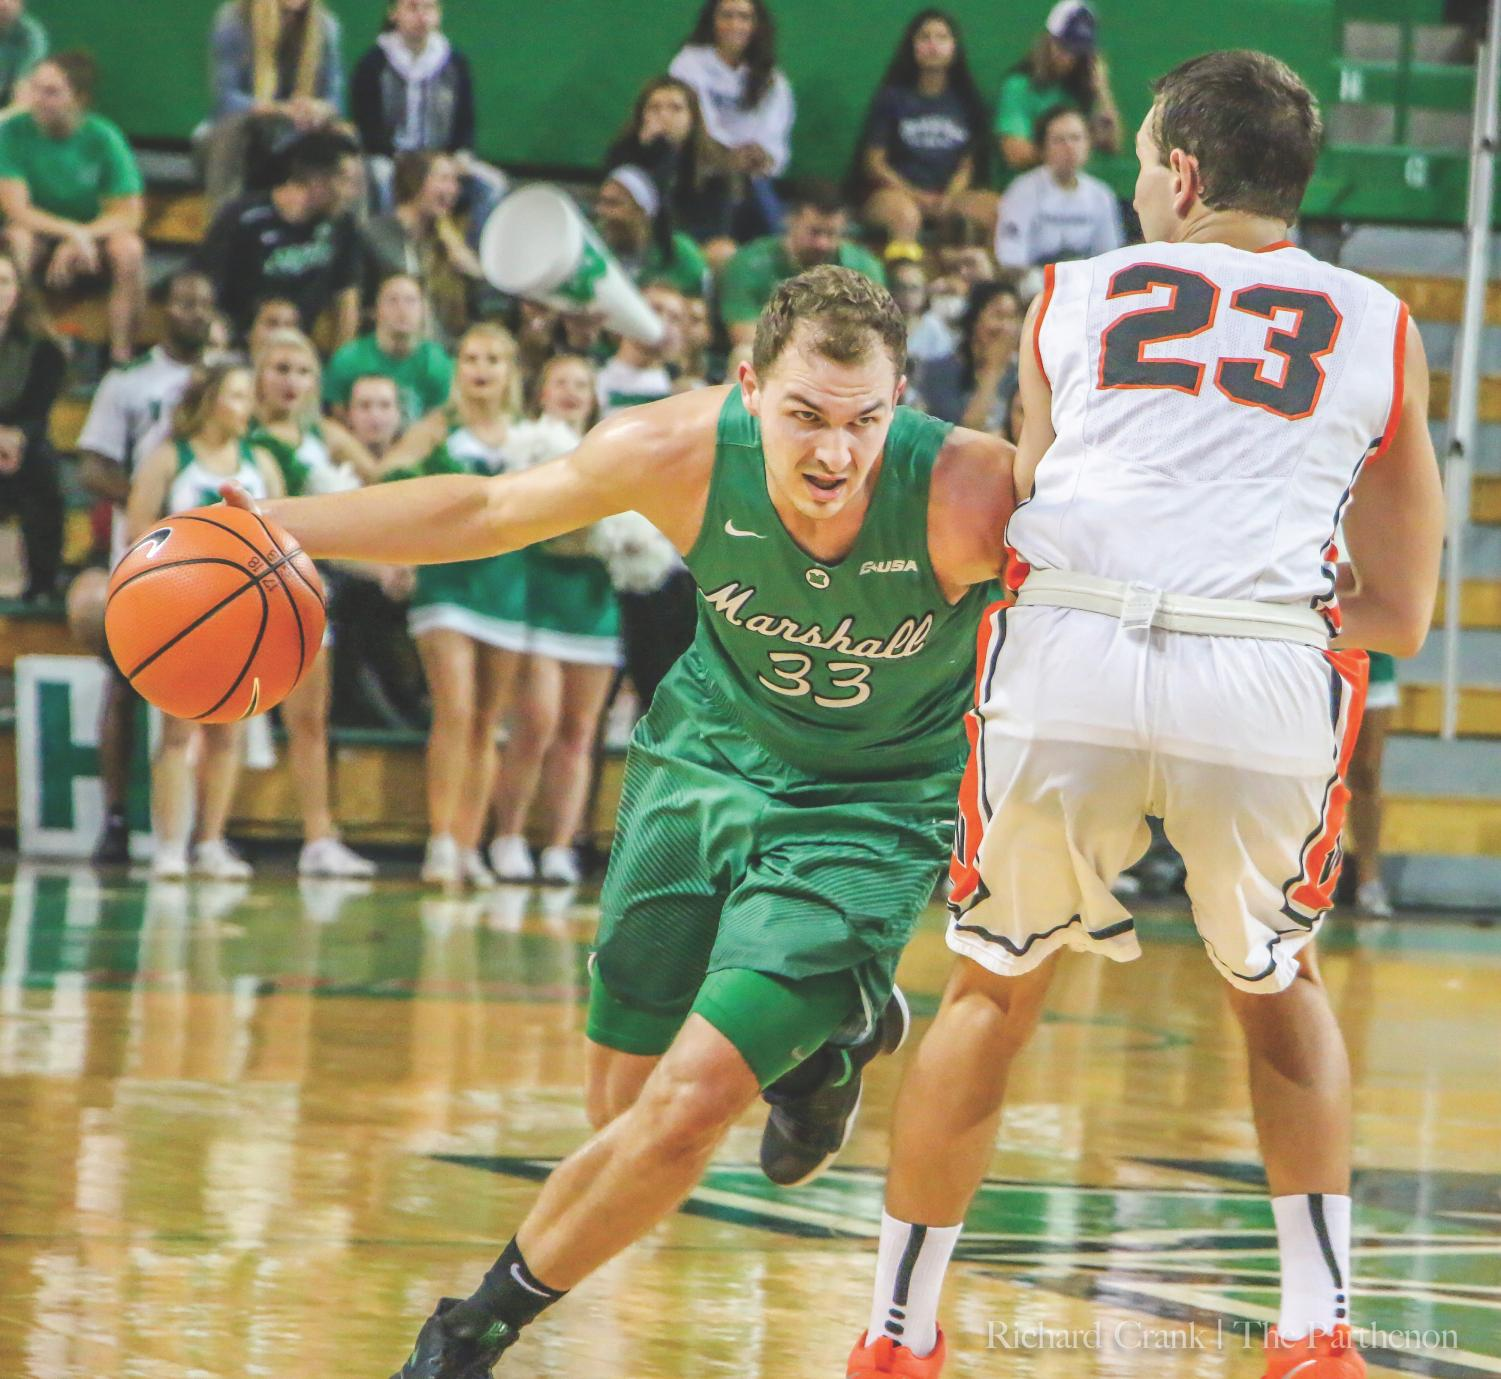 Marshall men's basketball guard Jon Elmore drives past his defender from West Virginia Wesleyan in the Thundering Herd's 95-76 exhibition win on Sunday in the Cam Henderson Center.